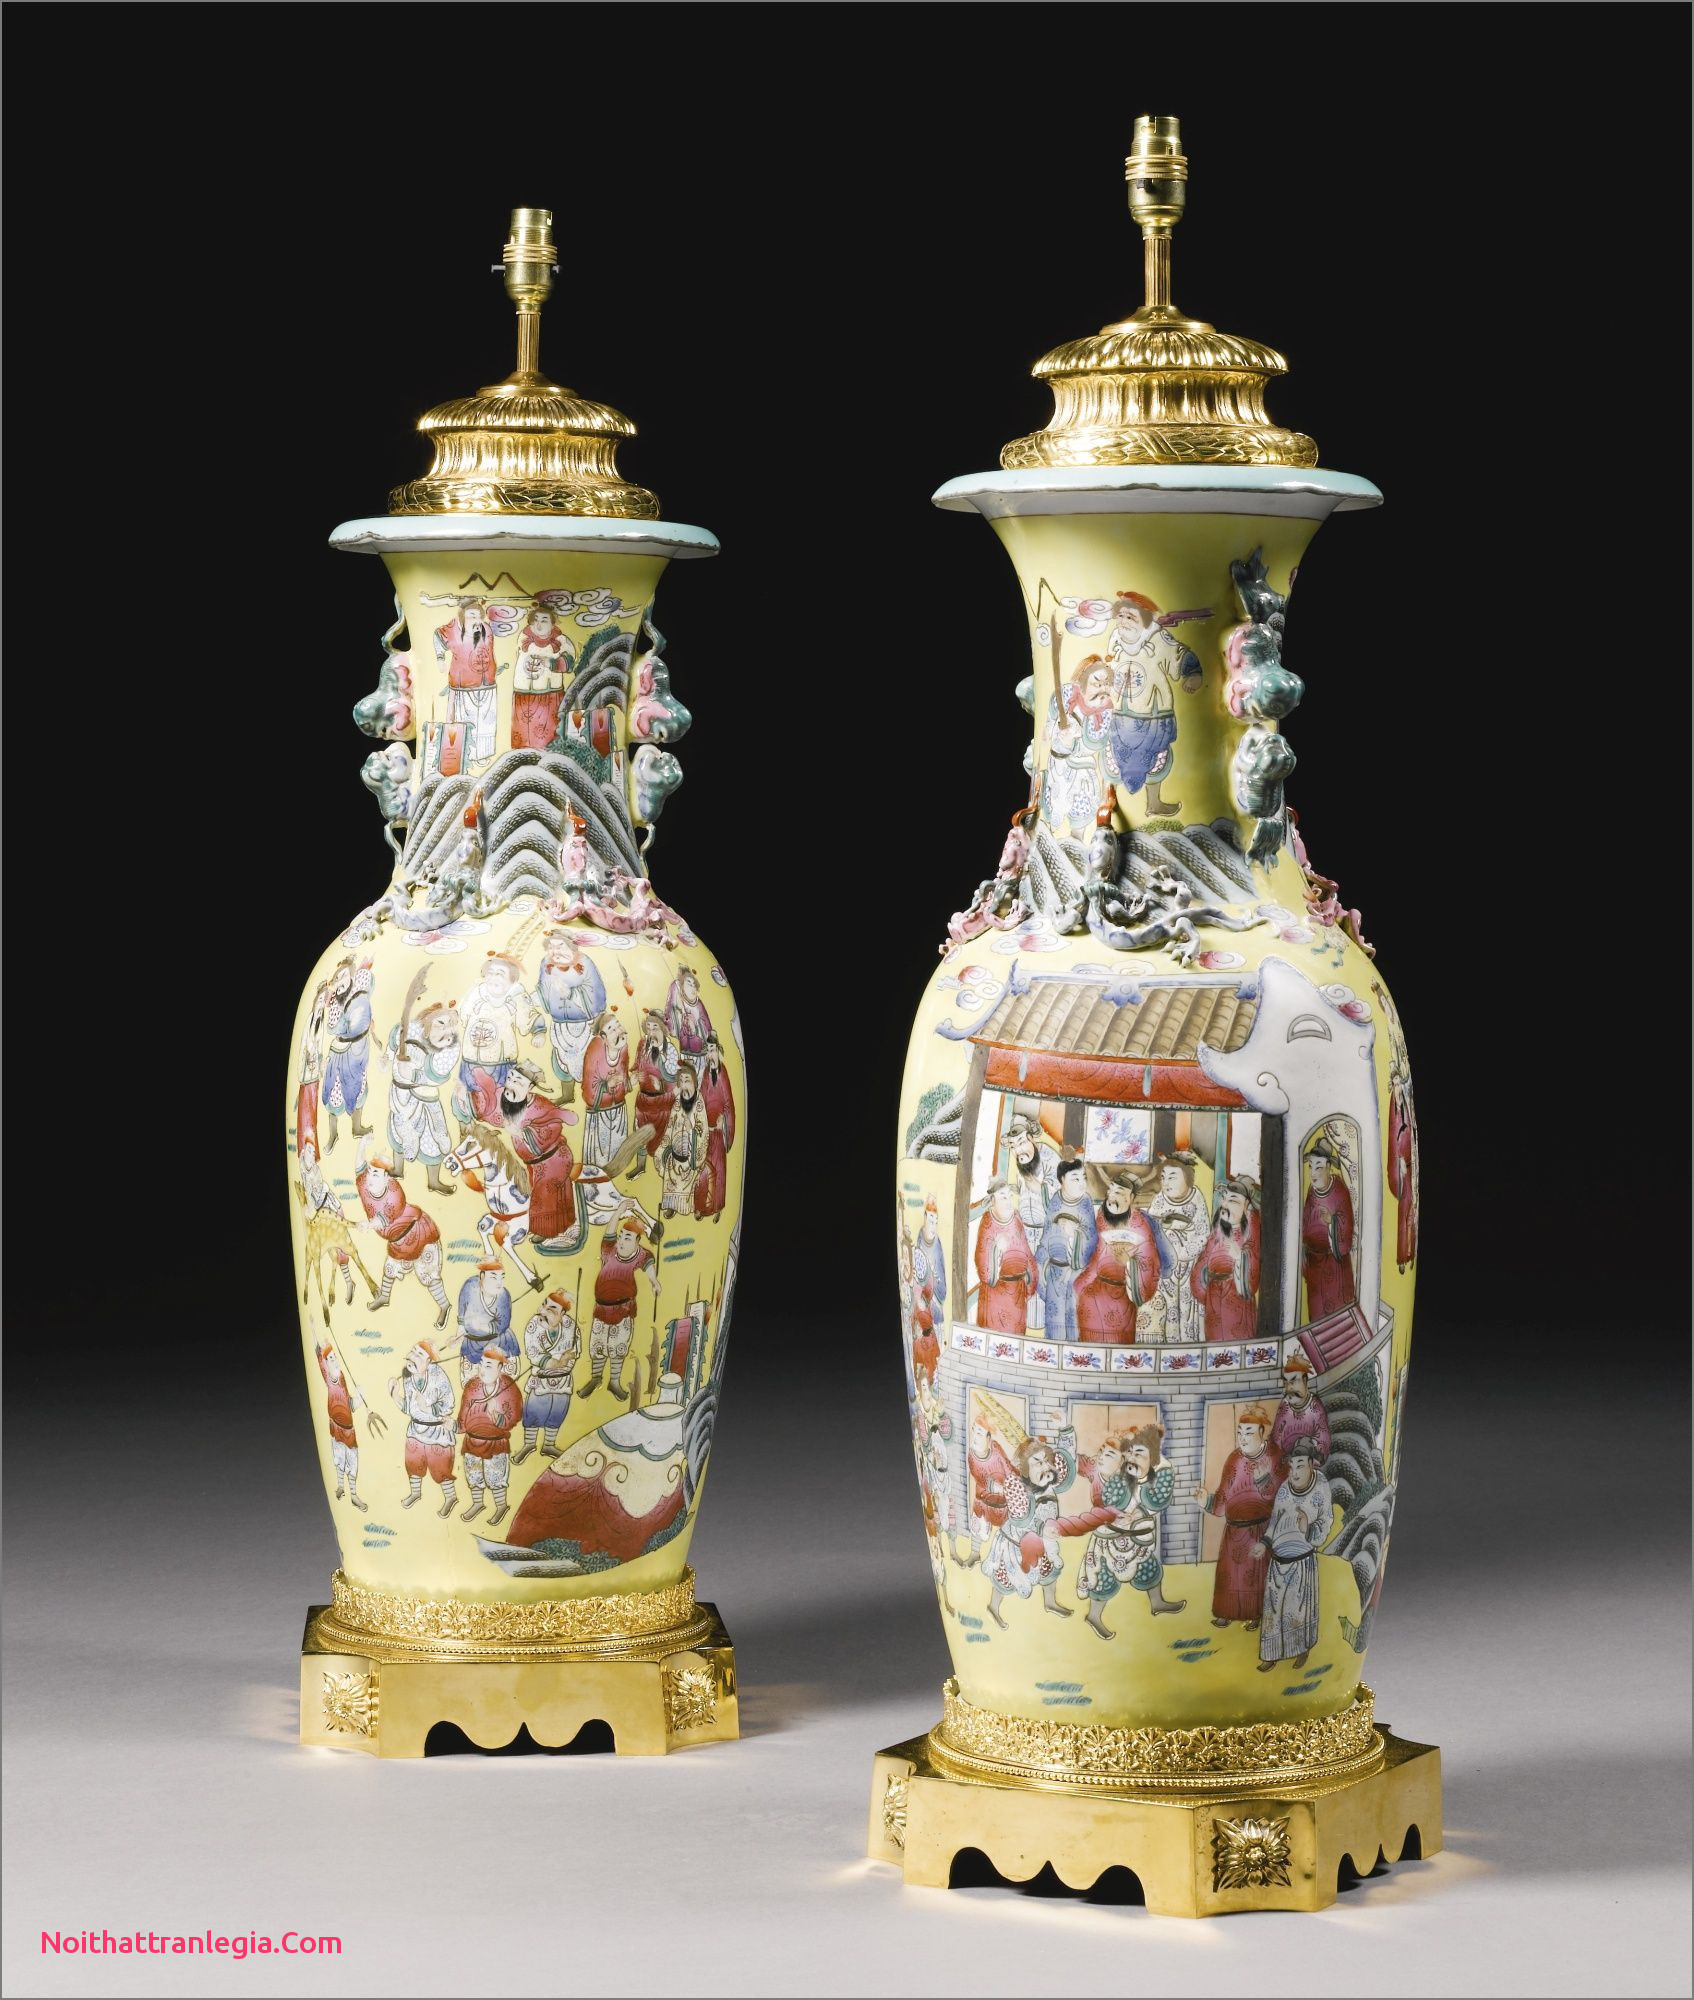 chinese cloisonne antique vases of 20 chinese antique vase noithattranlegia vases design in a pair of chinese porcelain vases sotheby s